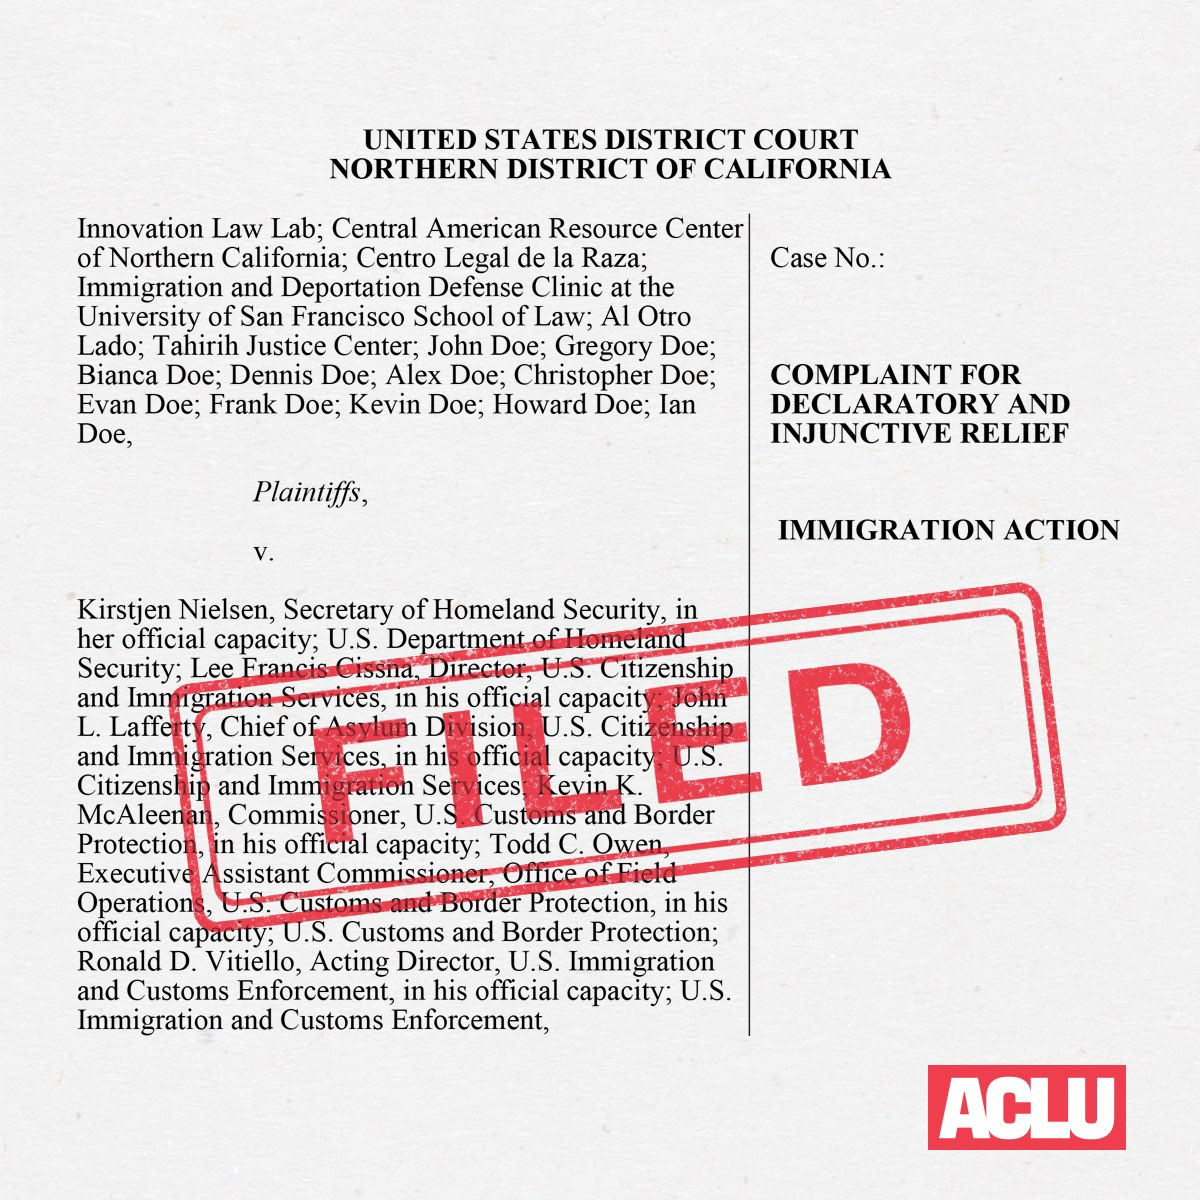 A new Trump administration policy forces asylum seekers out of the United States before their claims are even evaluated. It violates our country's immigration laws and international human rights law.  We're suing to stop it.